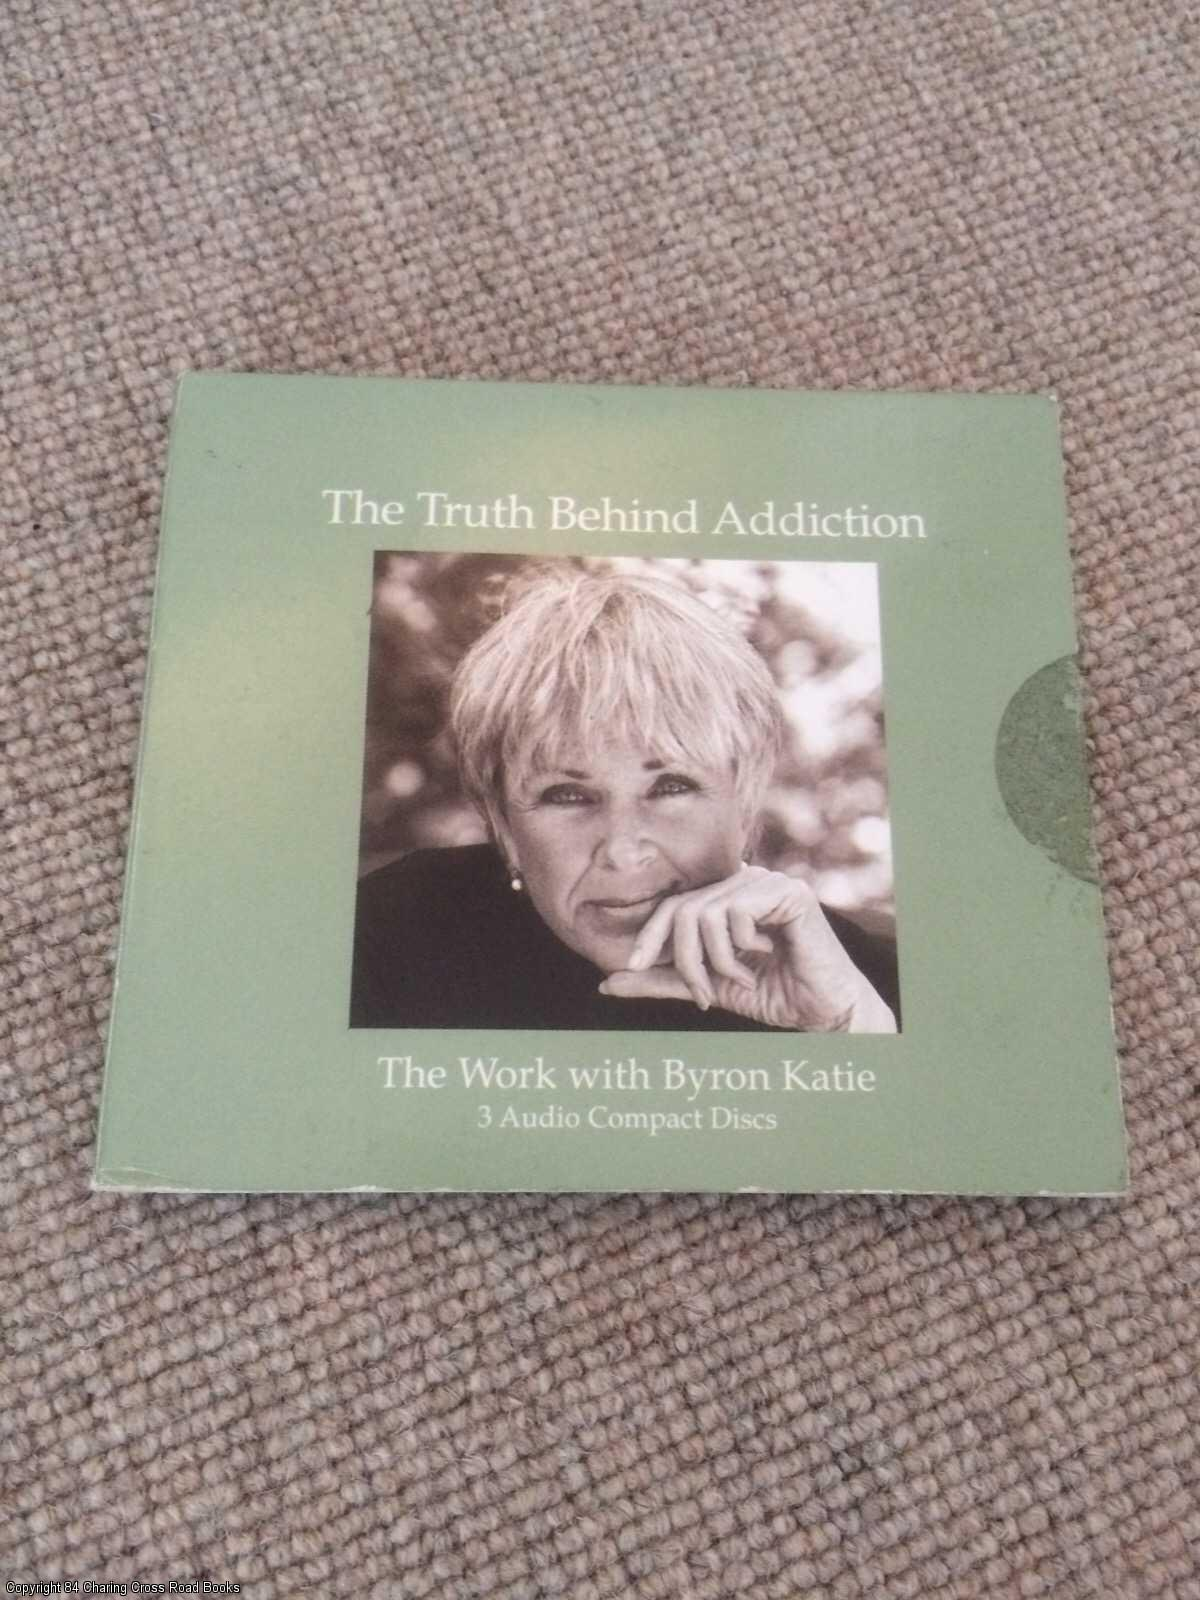 BYRON KATIE - The Truth Behind Addiction